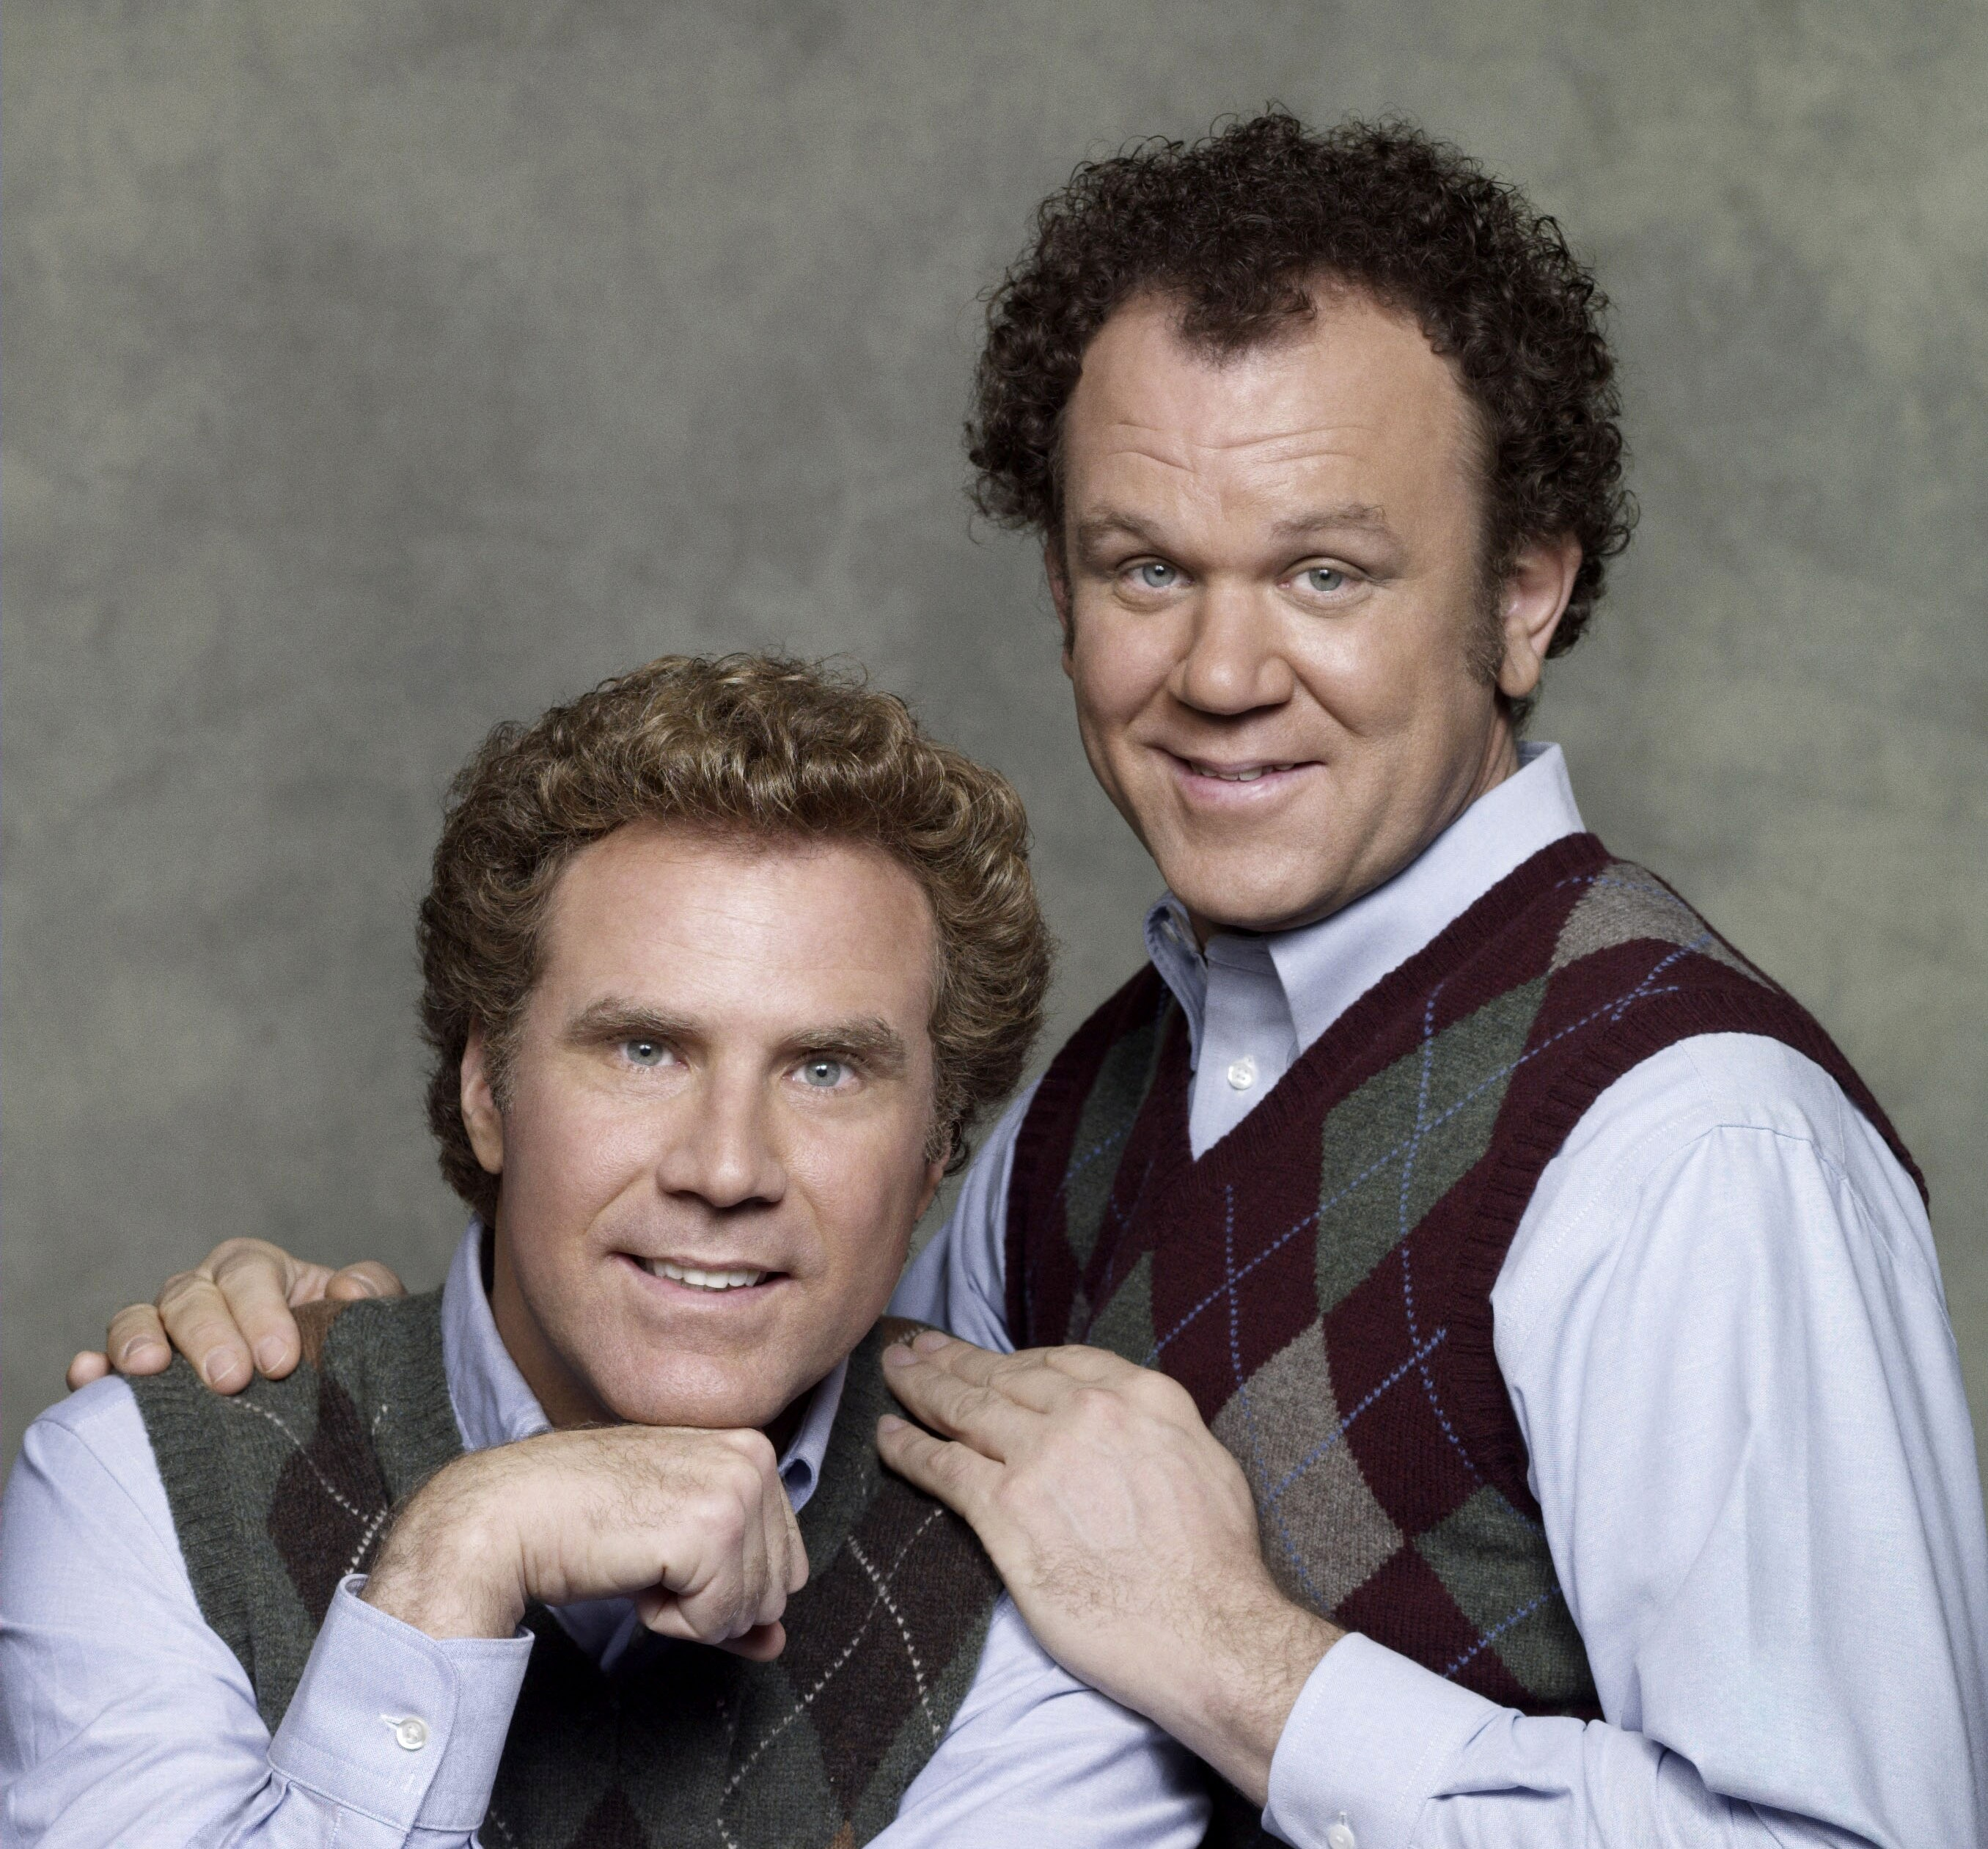 John C. Reilly joins Anchorman 2, casting call suggests